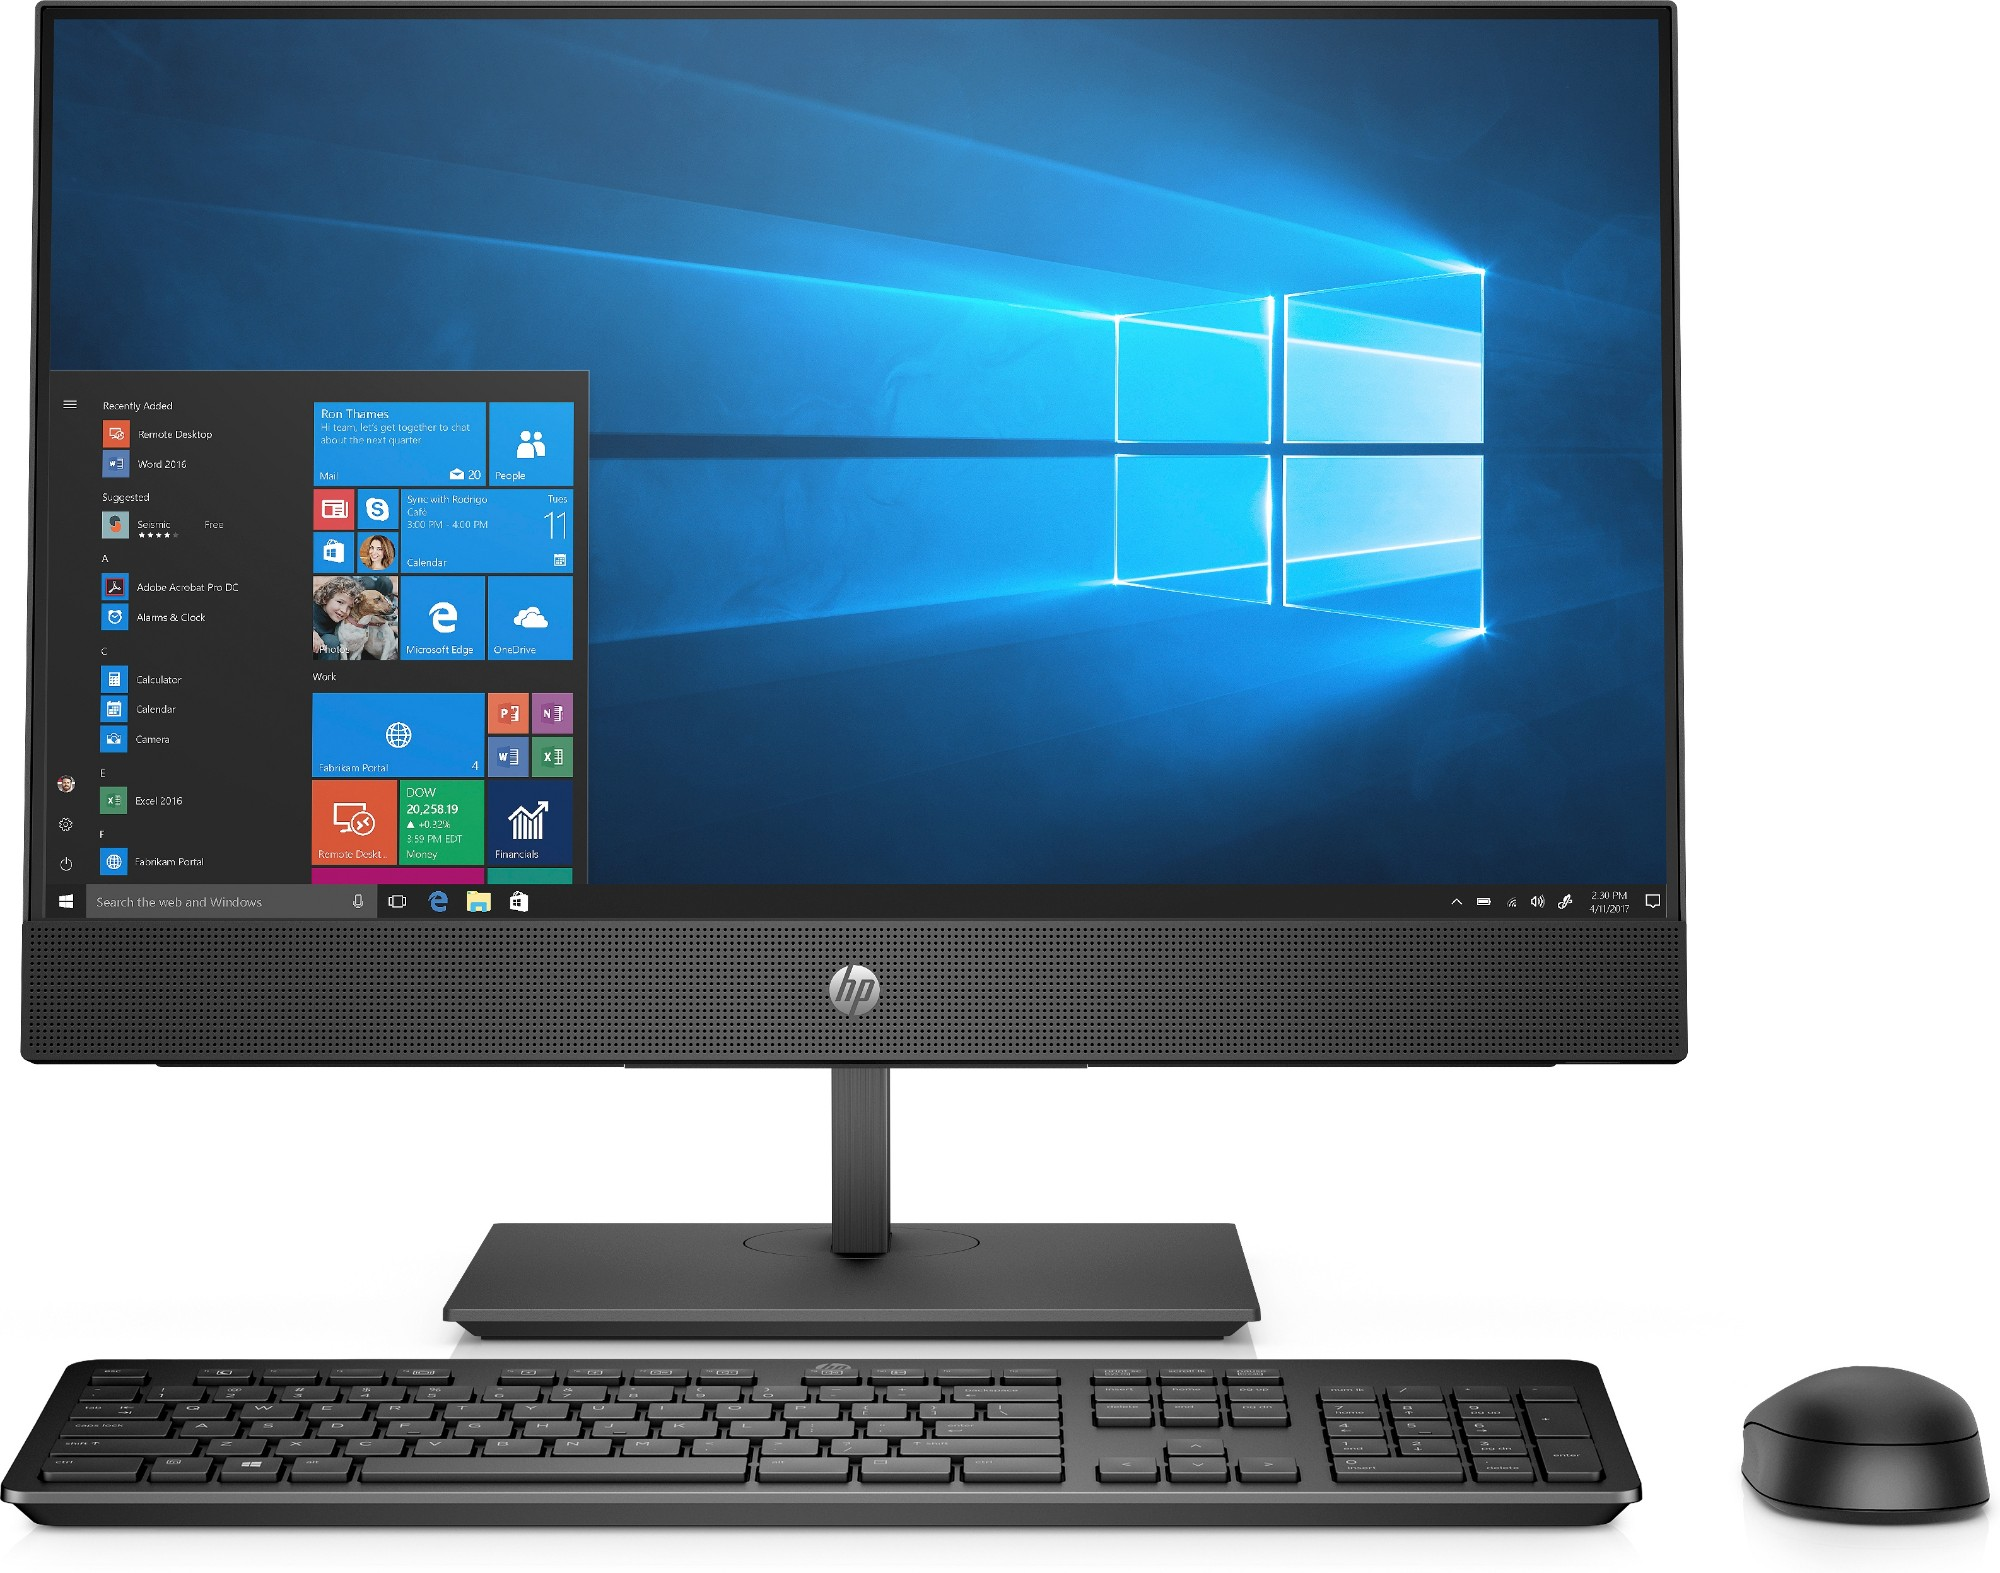 HP AIO ProOne 440 G5 8JW98EA#ABU Core i7-9700T 8GB 512GB SSD 23.8IN FHD Win 10 Pro